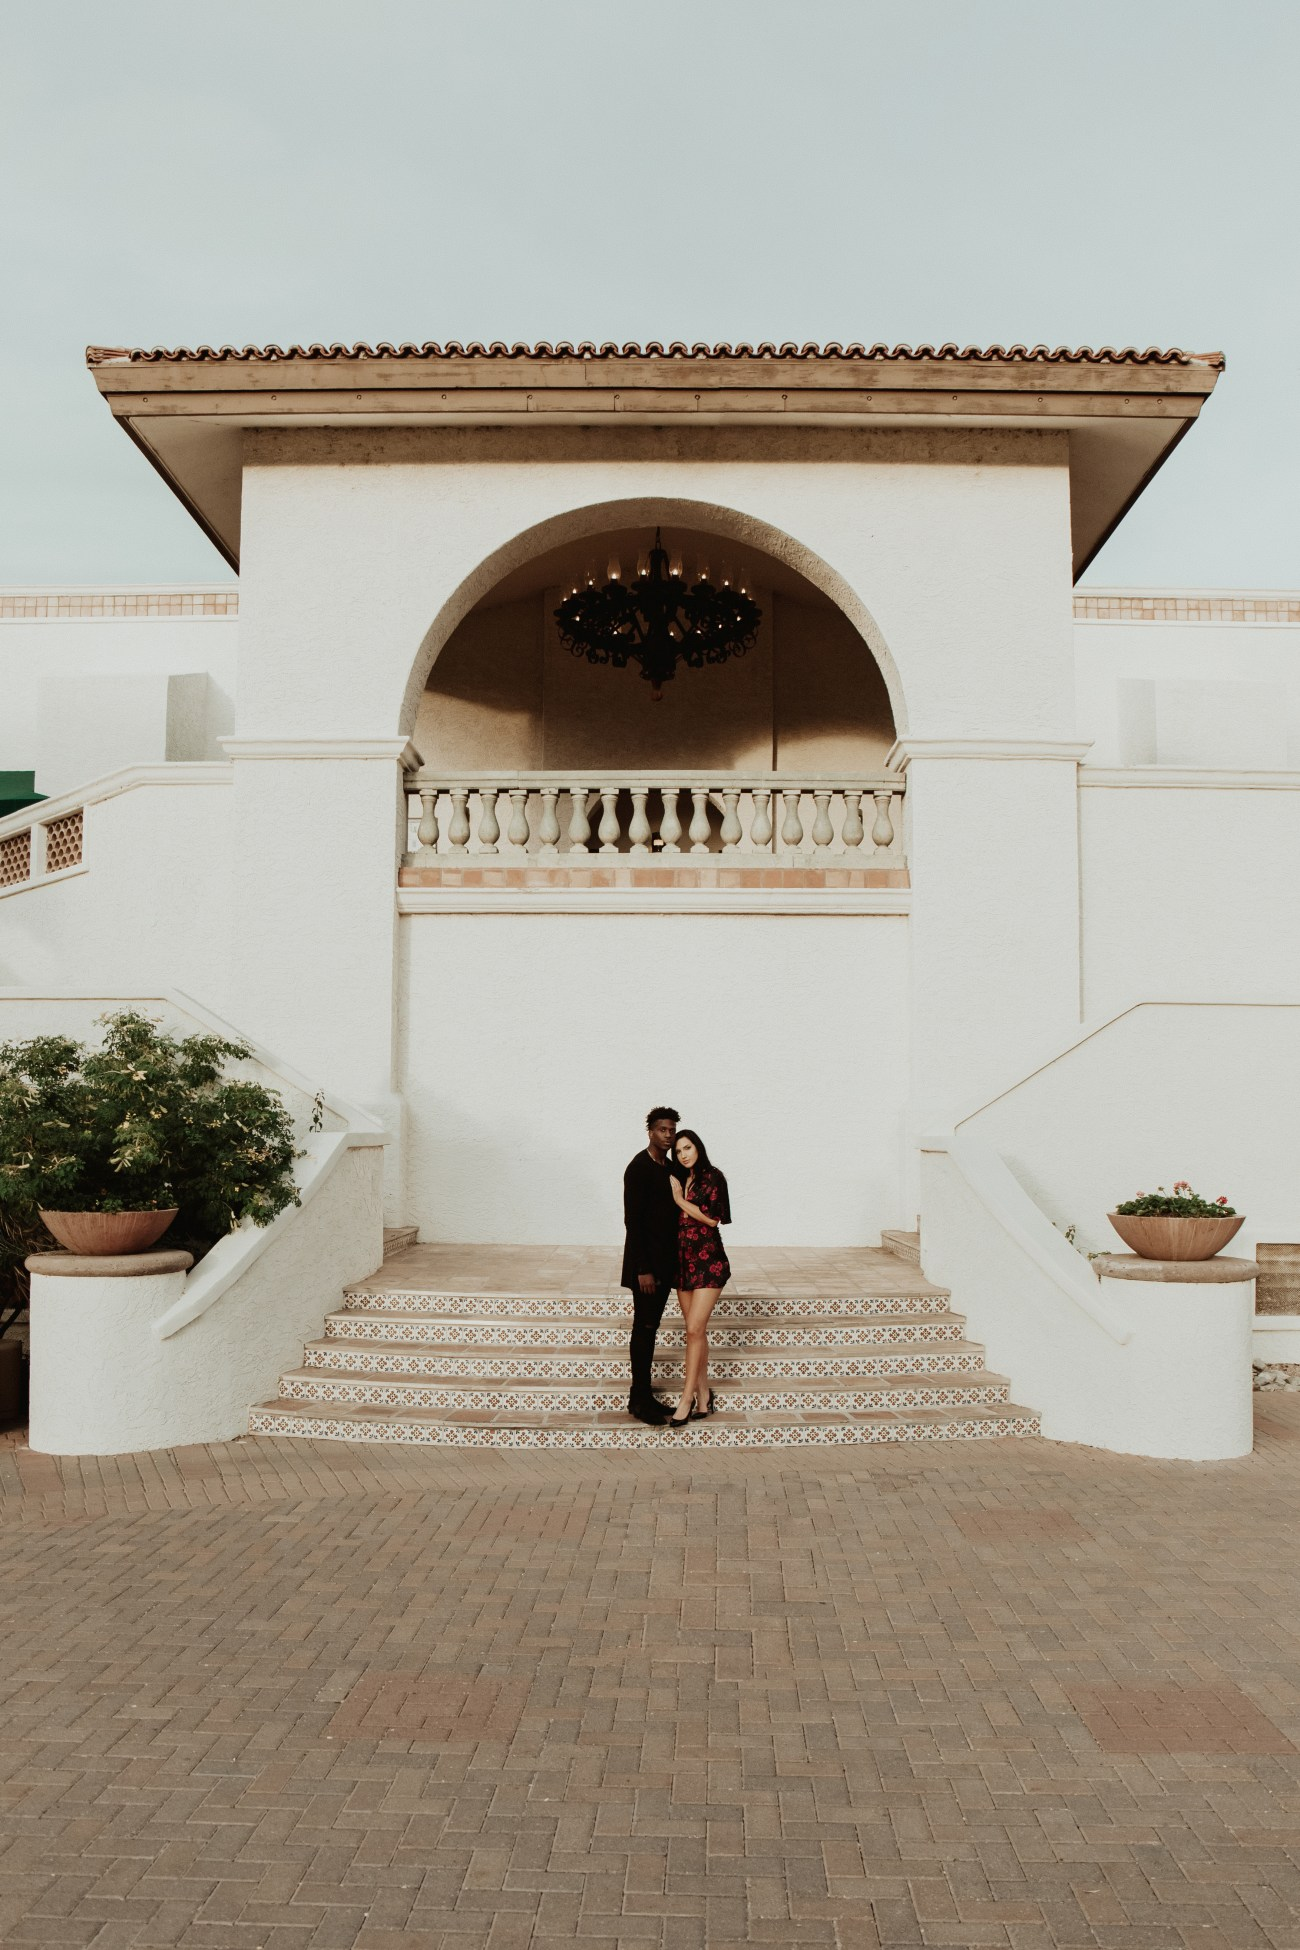 Megan Claire Photography | Arizona Wedding and Engagement Photographer. Spanish architecture inspired couples session @meganclairephoto